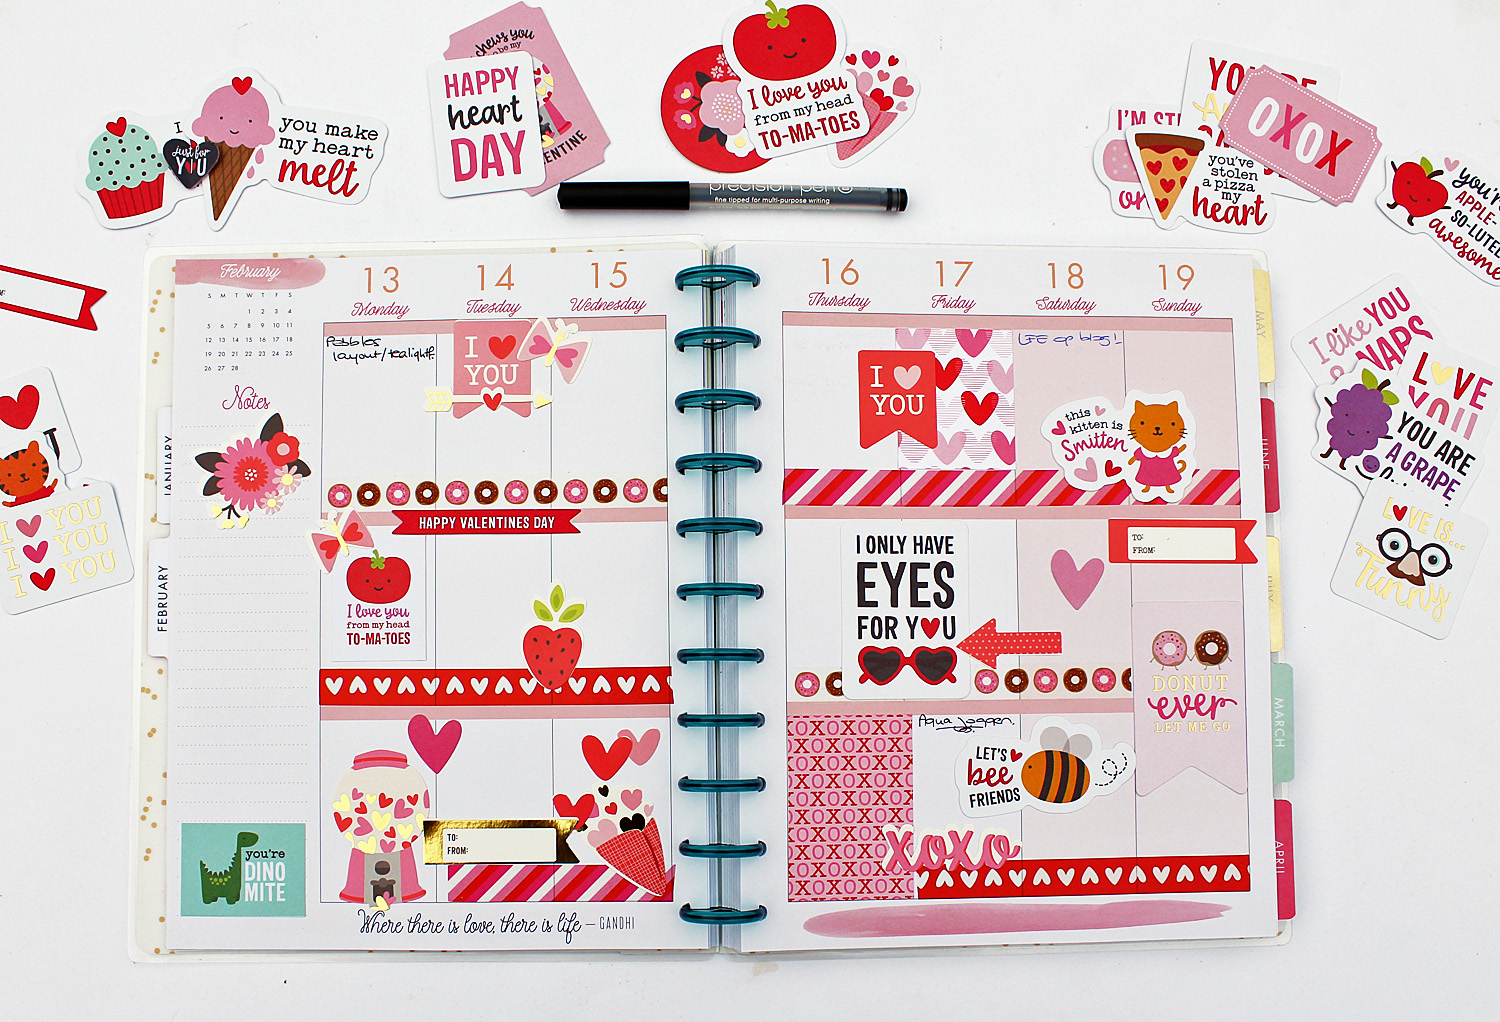 Valentine Planner Fun by @MoniqueLiedtke using the #MyFunnyValentine collection from @PebblesInc.